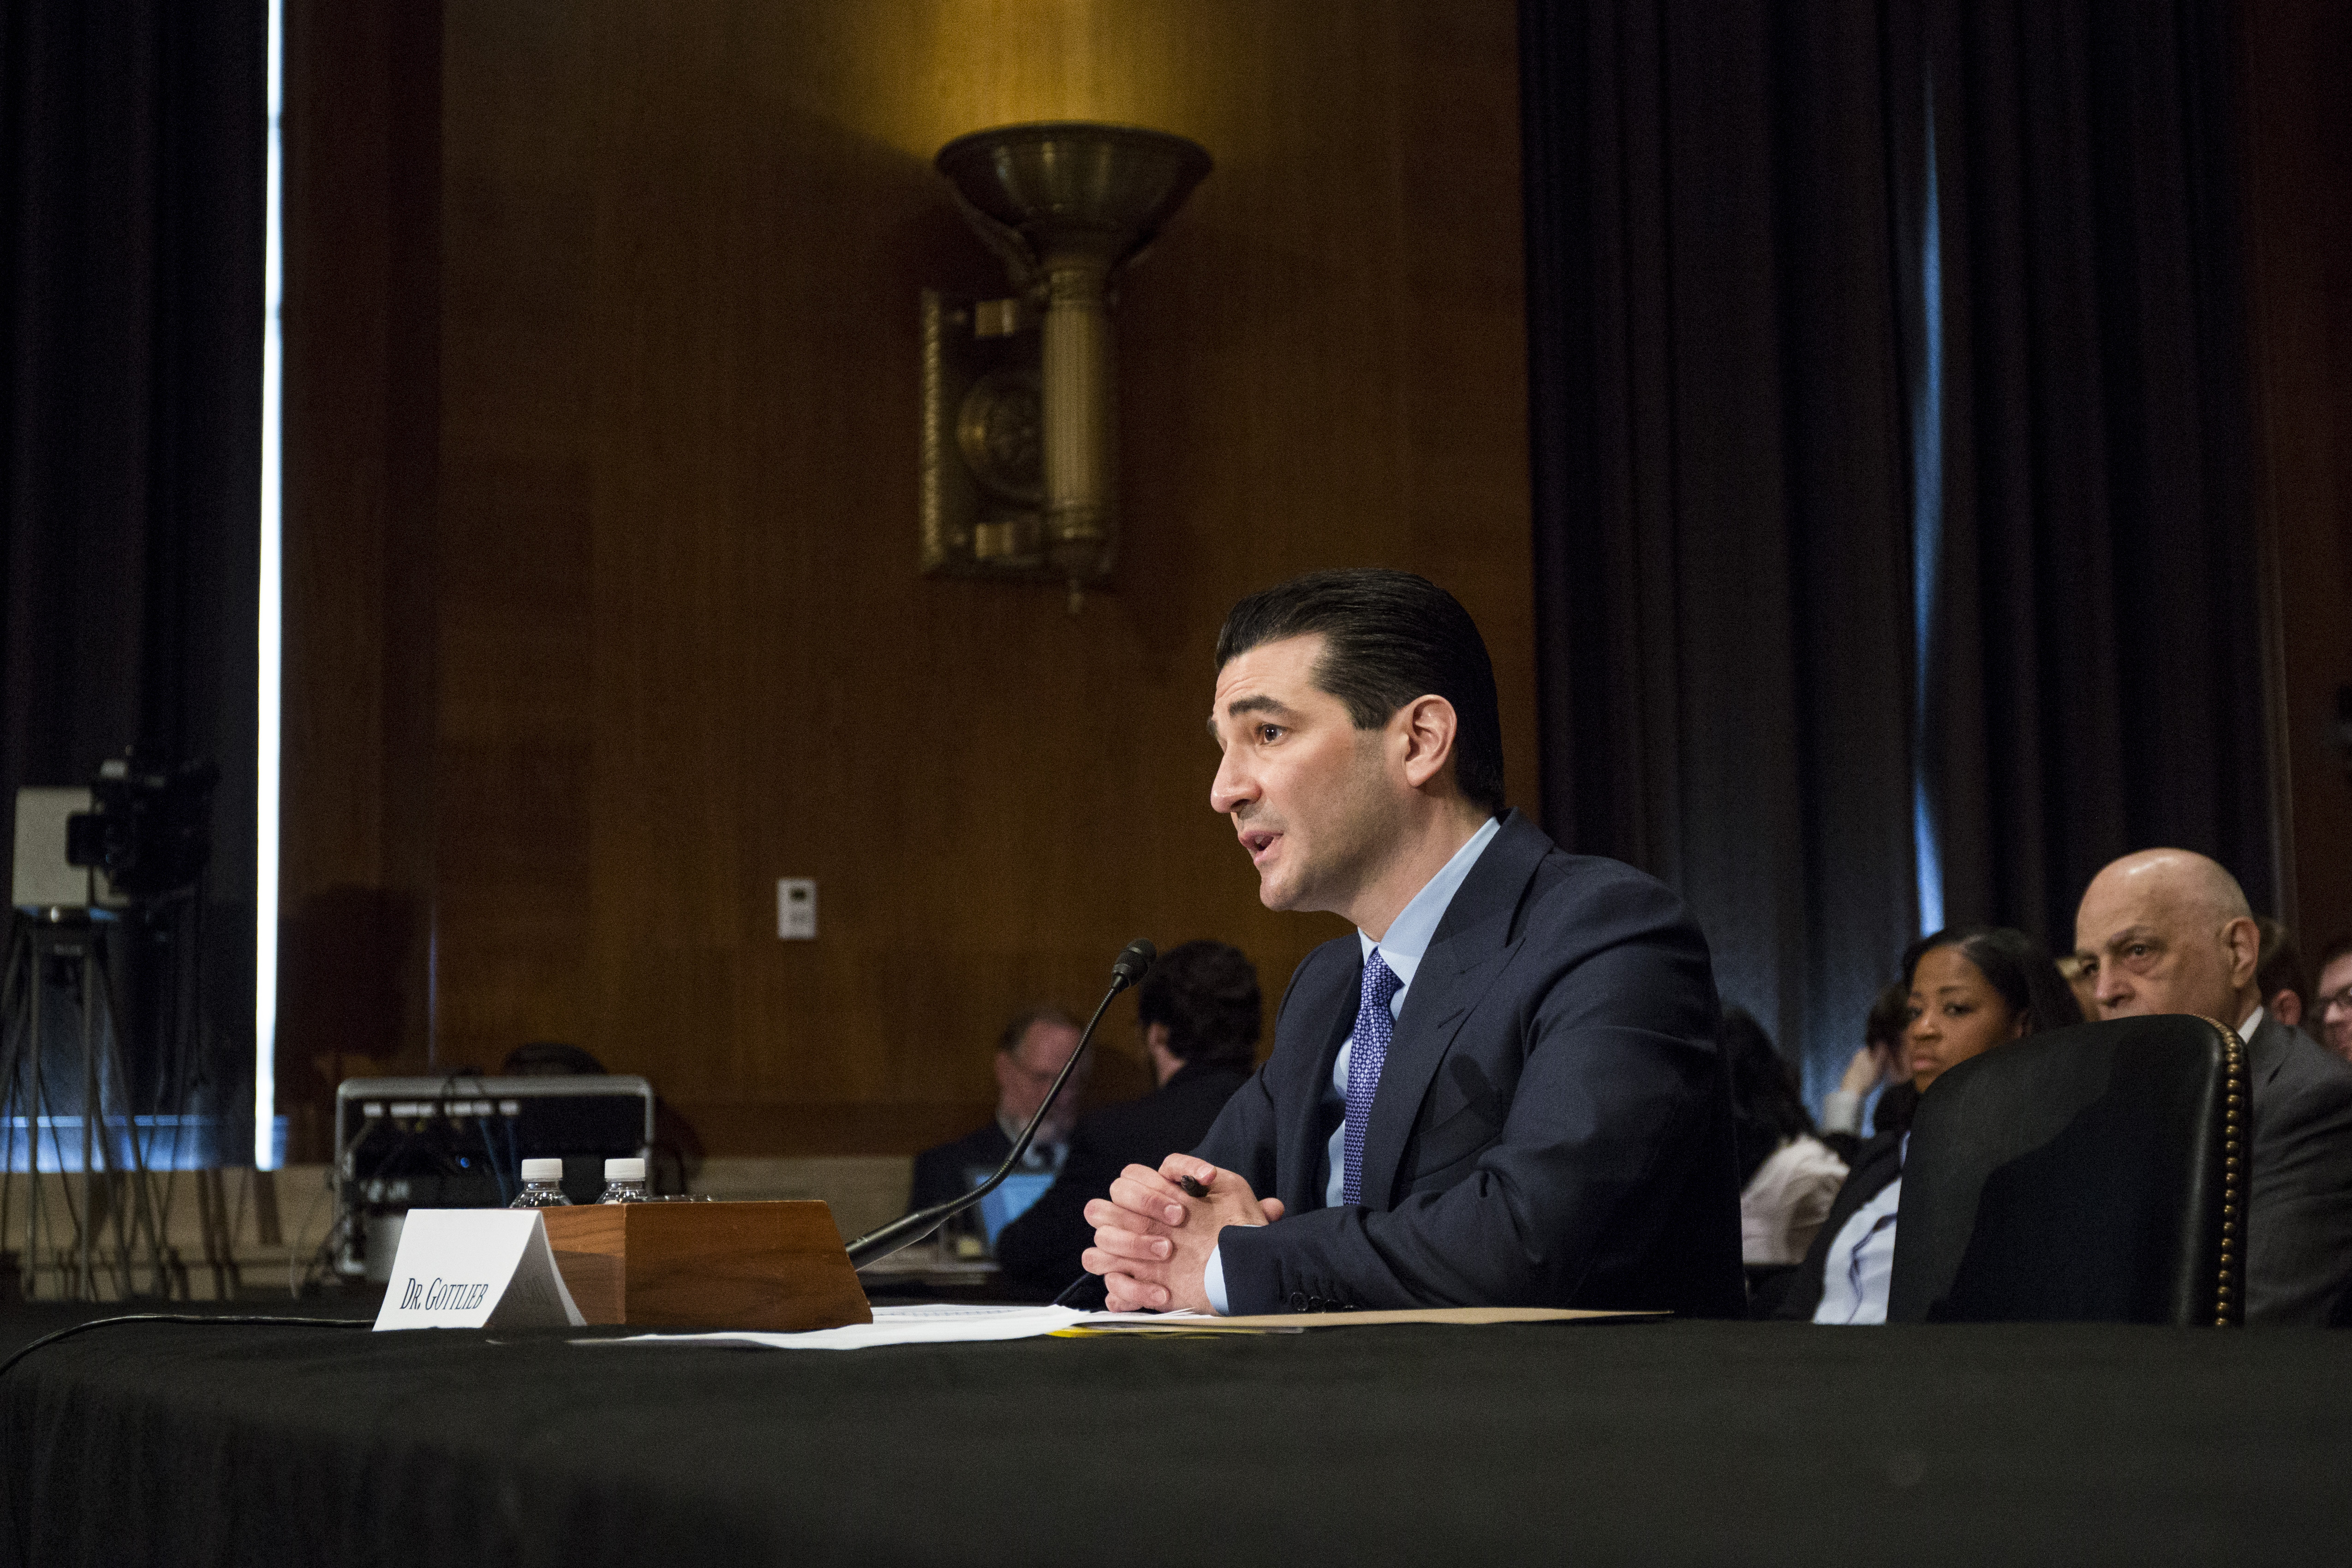 FDA Commissioner-designate Scott Gottlieb testifies during a Senate Health, Education, Labor and Pensions Committee hearing on April 5, 2017 at on Capitol Hill in Washington, D.C. Zach Gibson/Getty Images